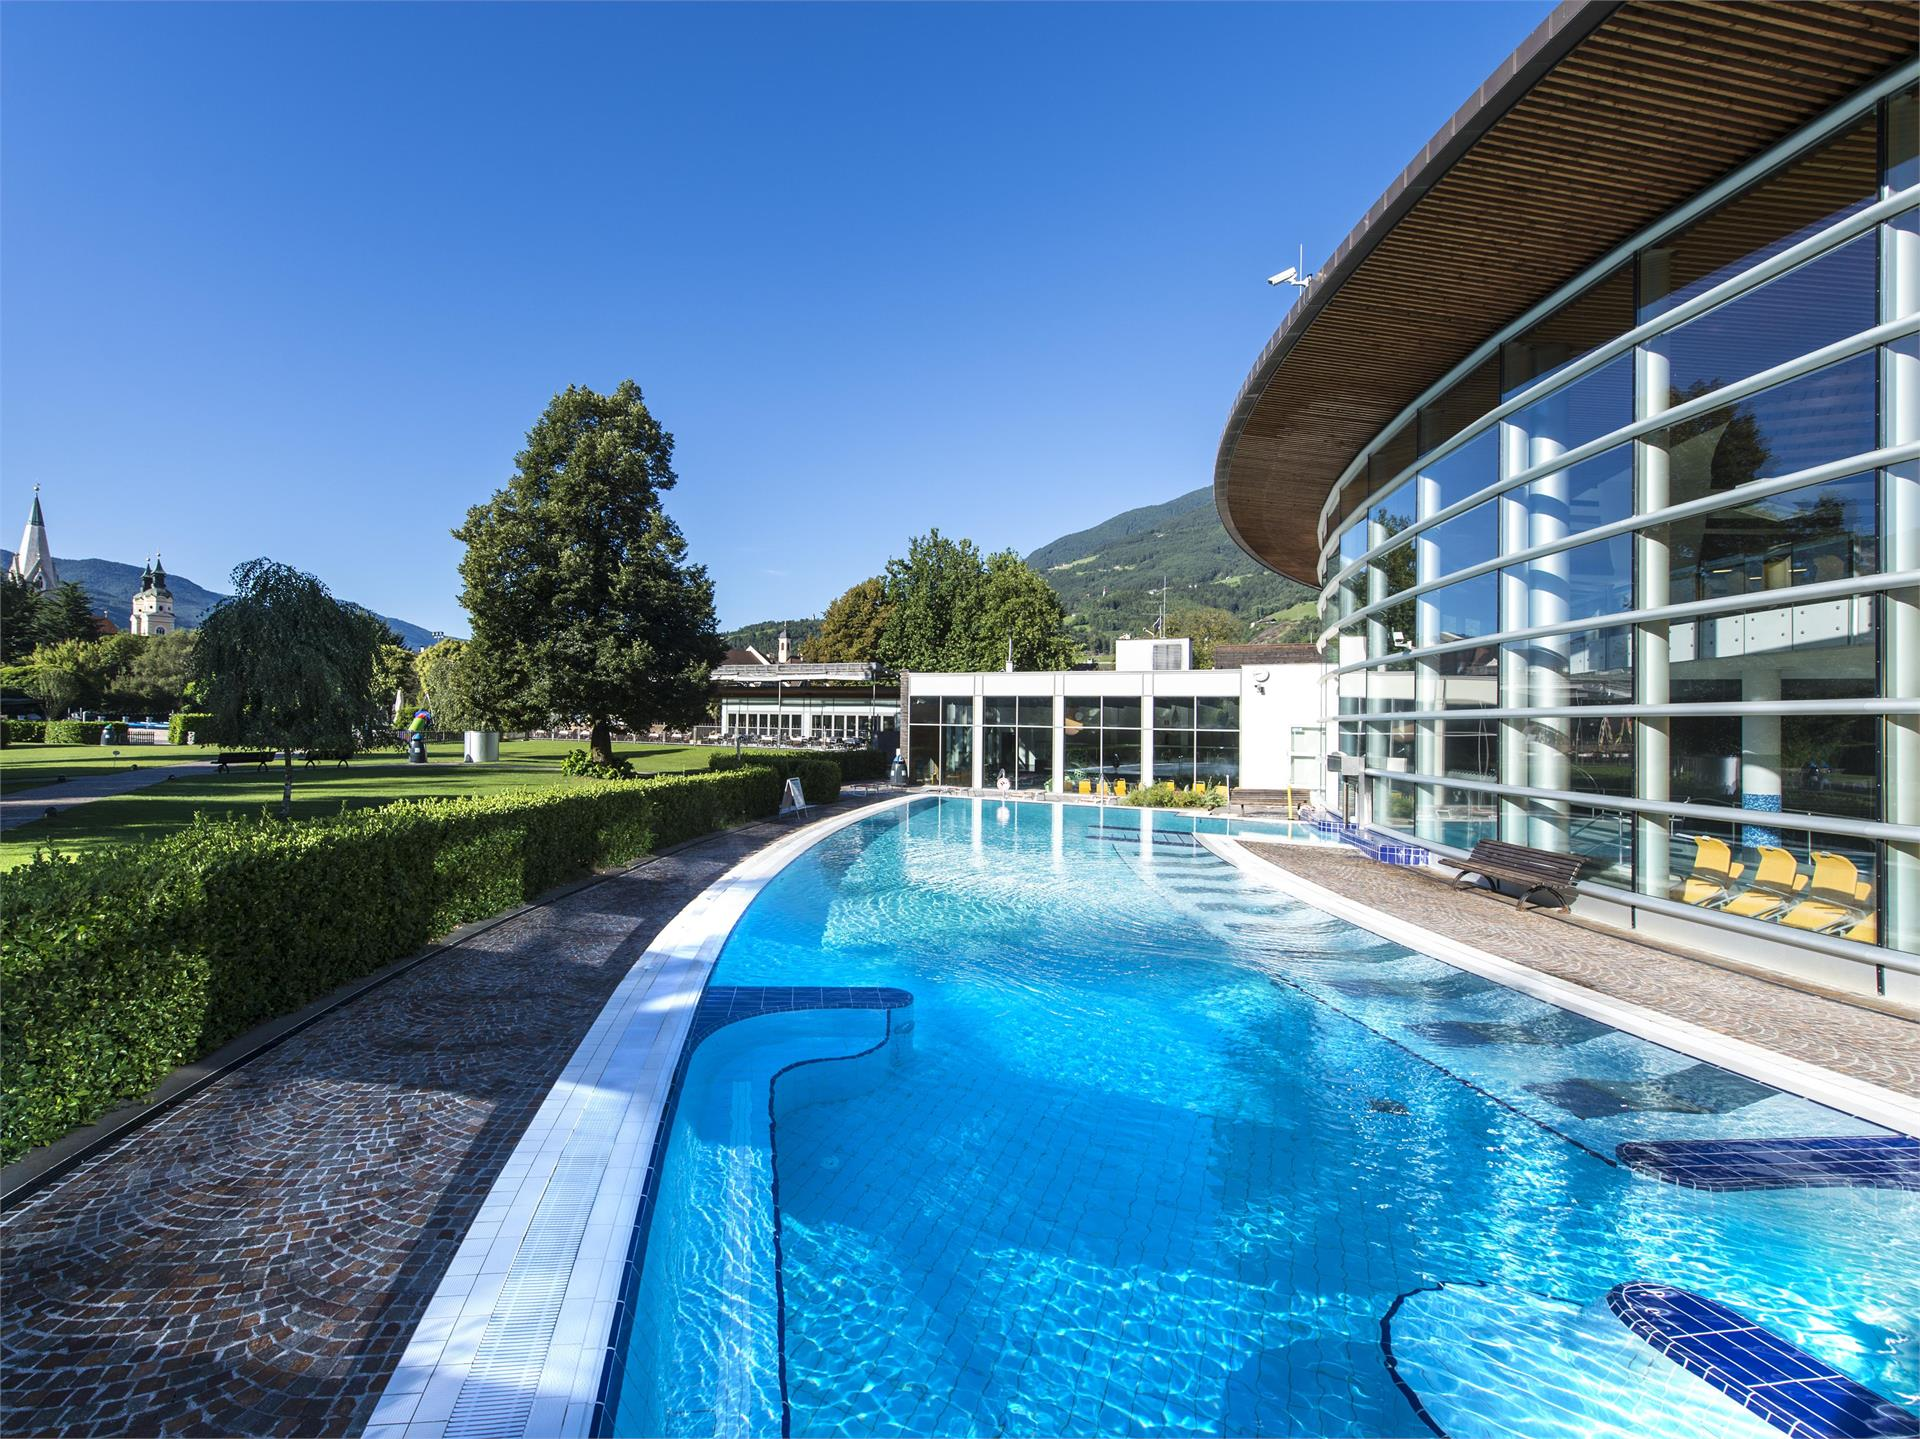 Acquarena outdoor swimming pool